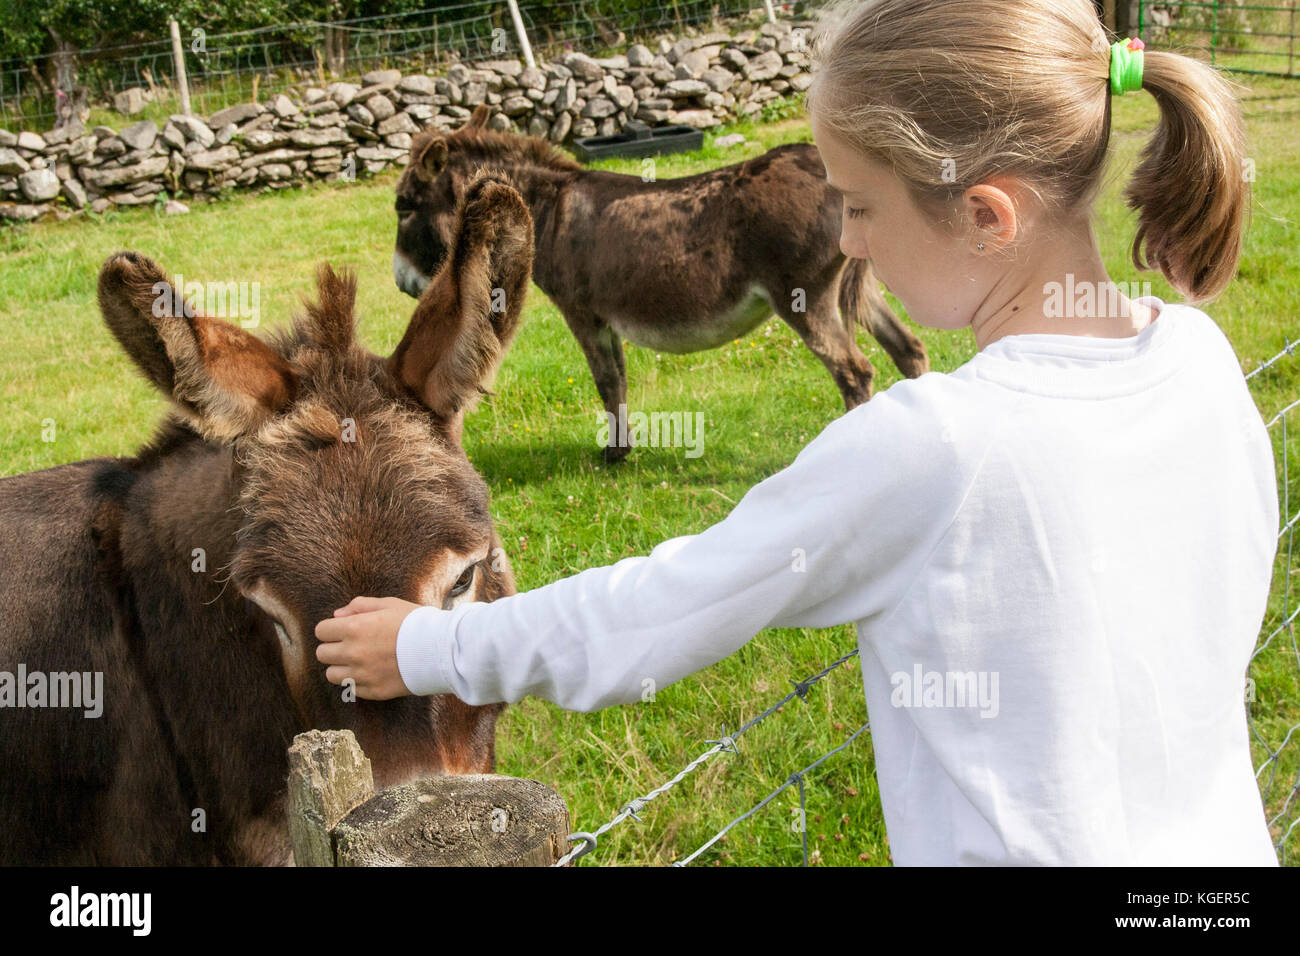 Closeup Child stroking a donkey with a second donkey in the background  green grass field bright summer's day, - Stock Image